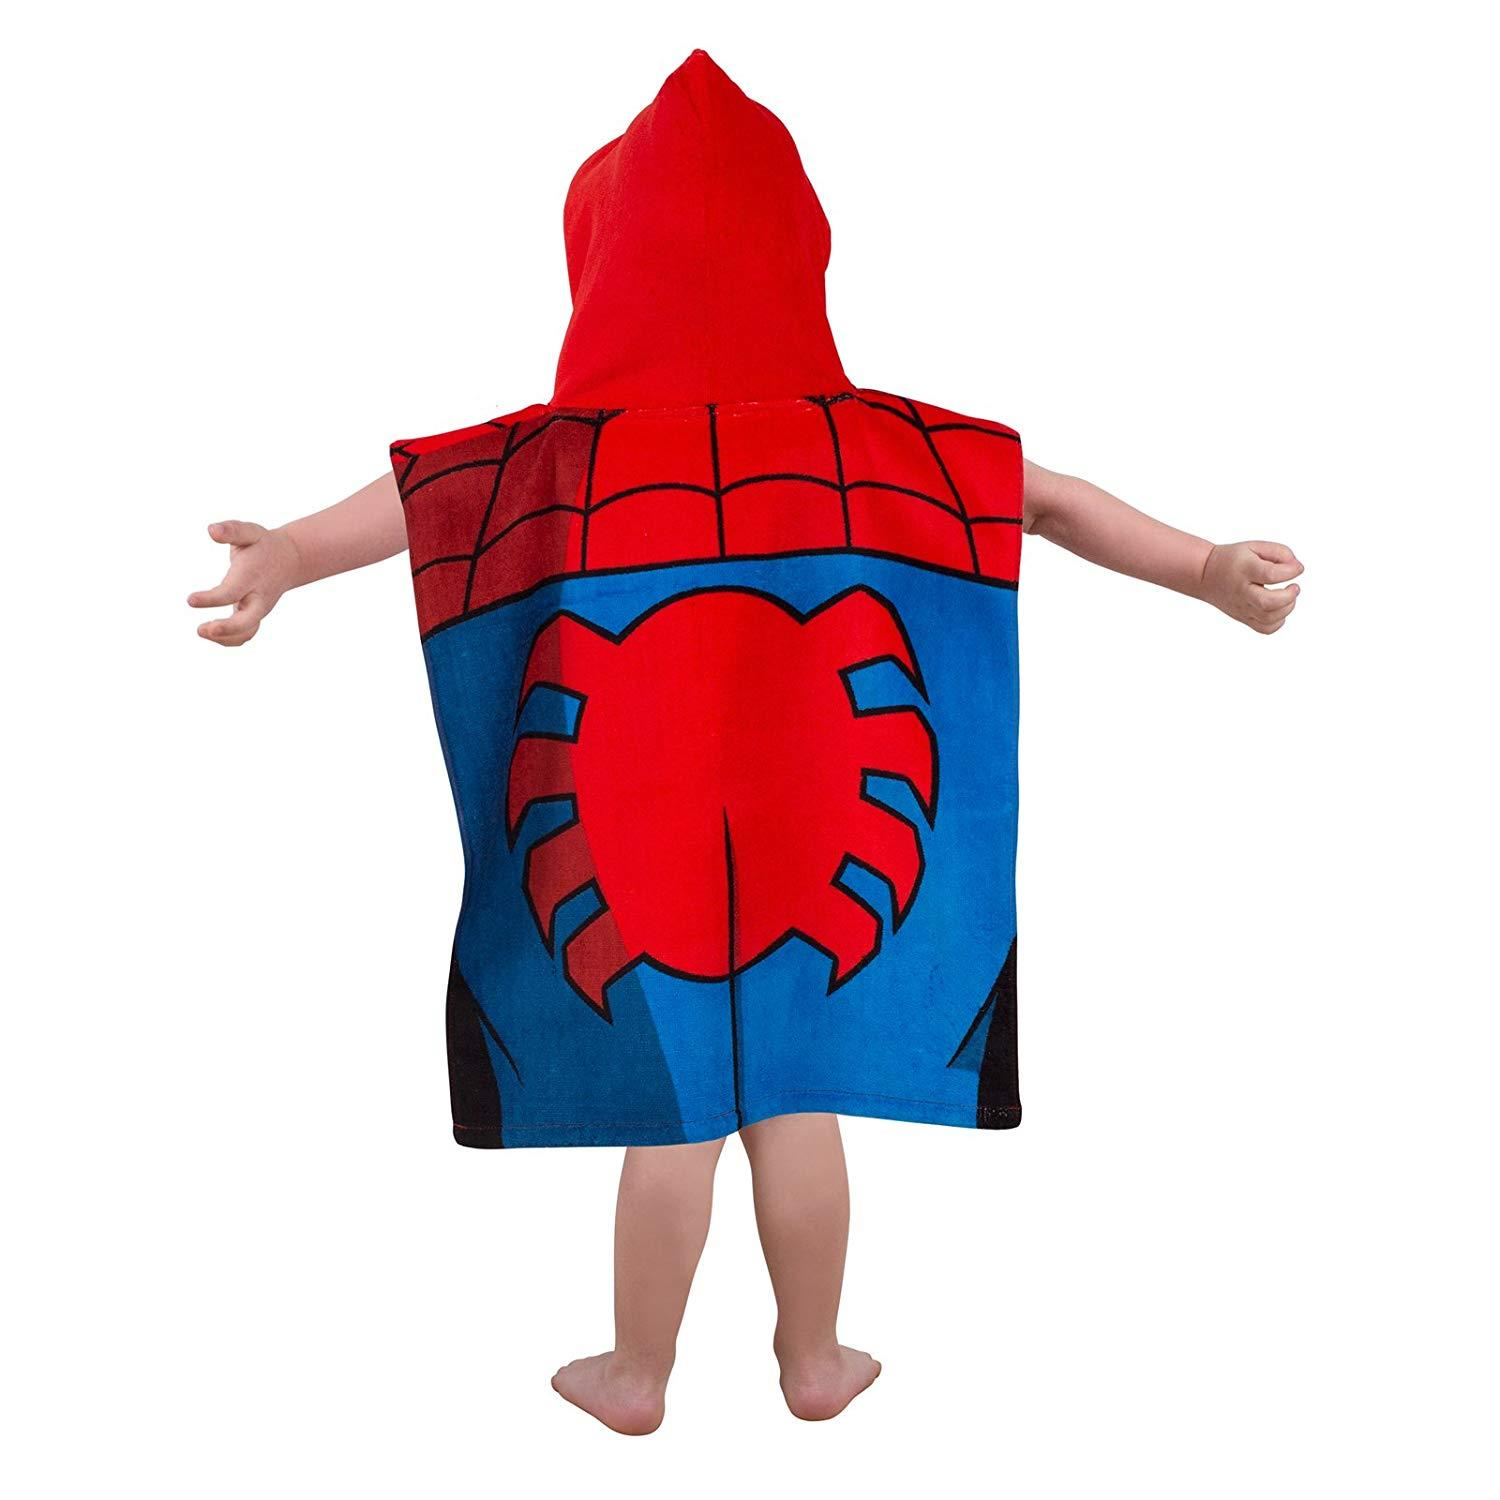 Kids-Boys-Novelty-Girls-Character-Hooded-Towel-Poncho-Beach-Bath-Swim thumbnail 32